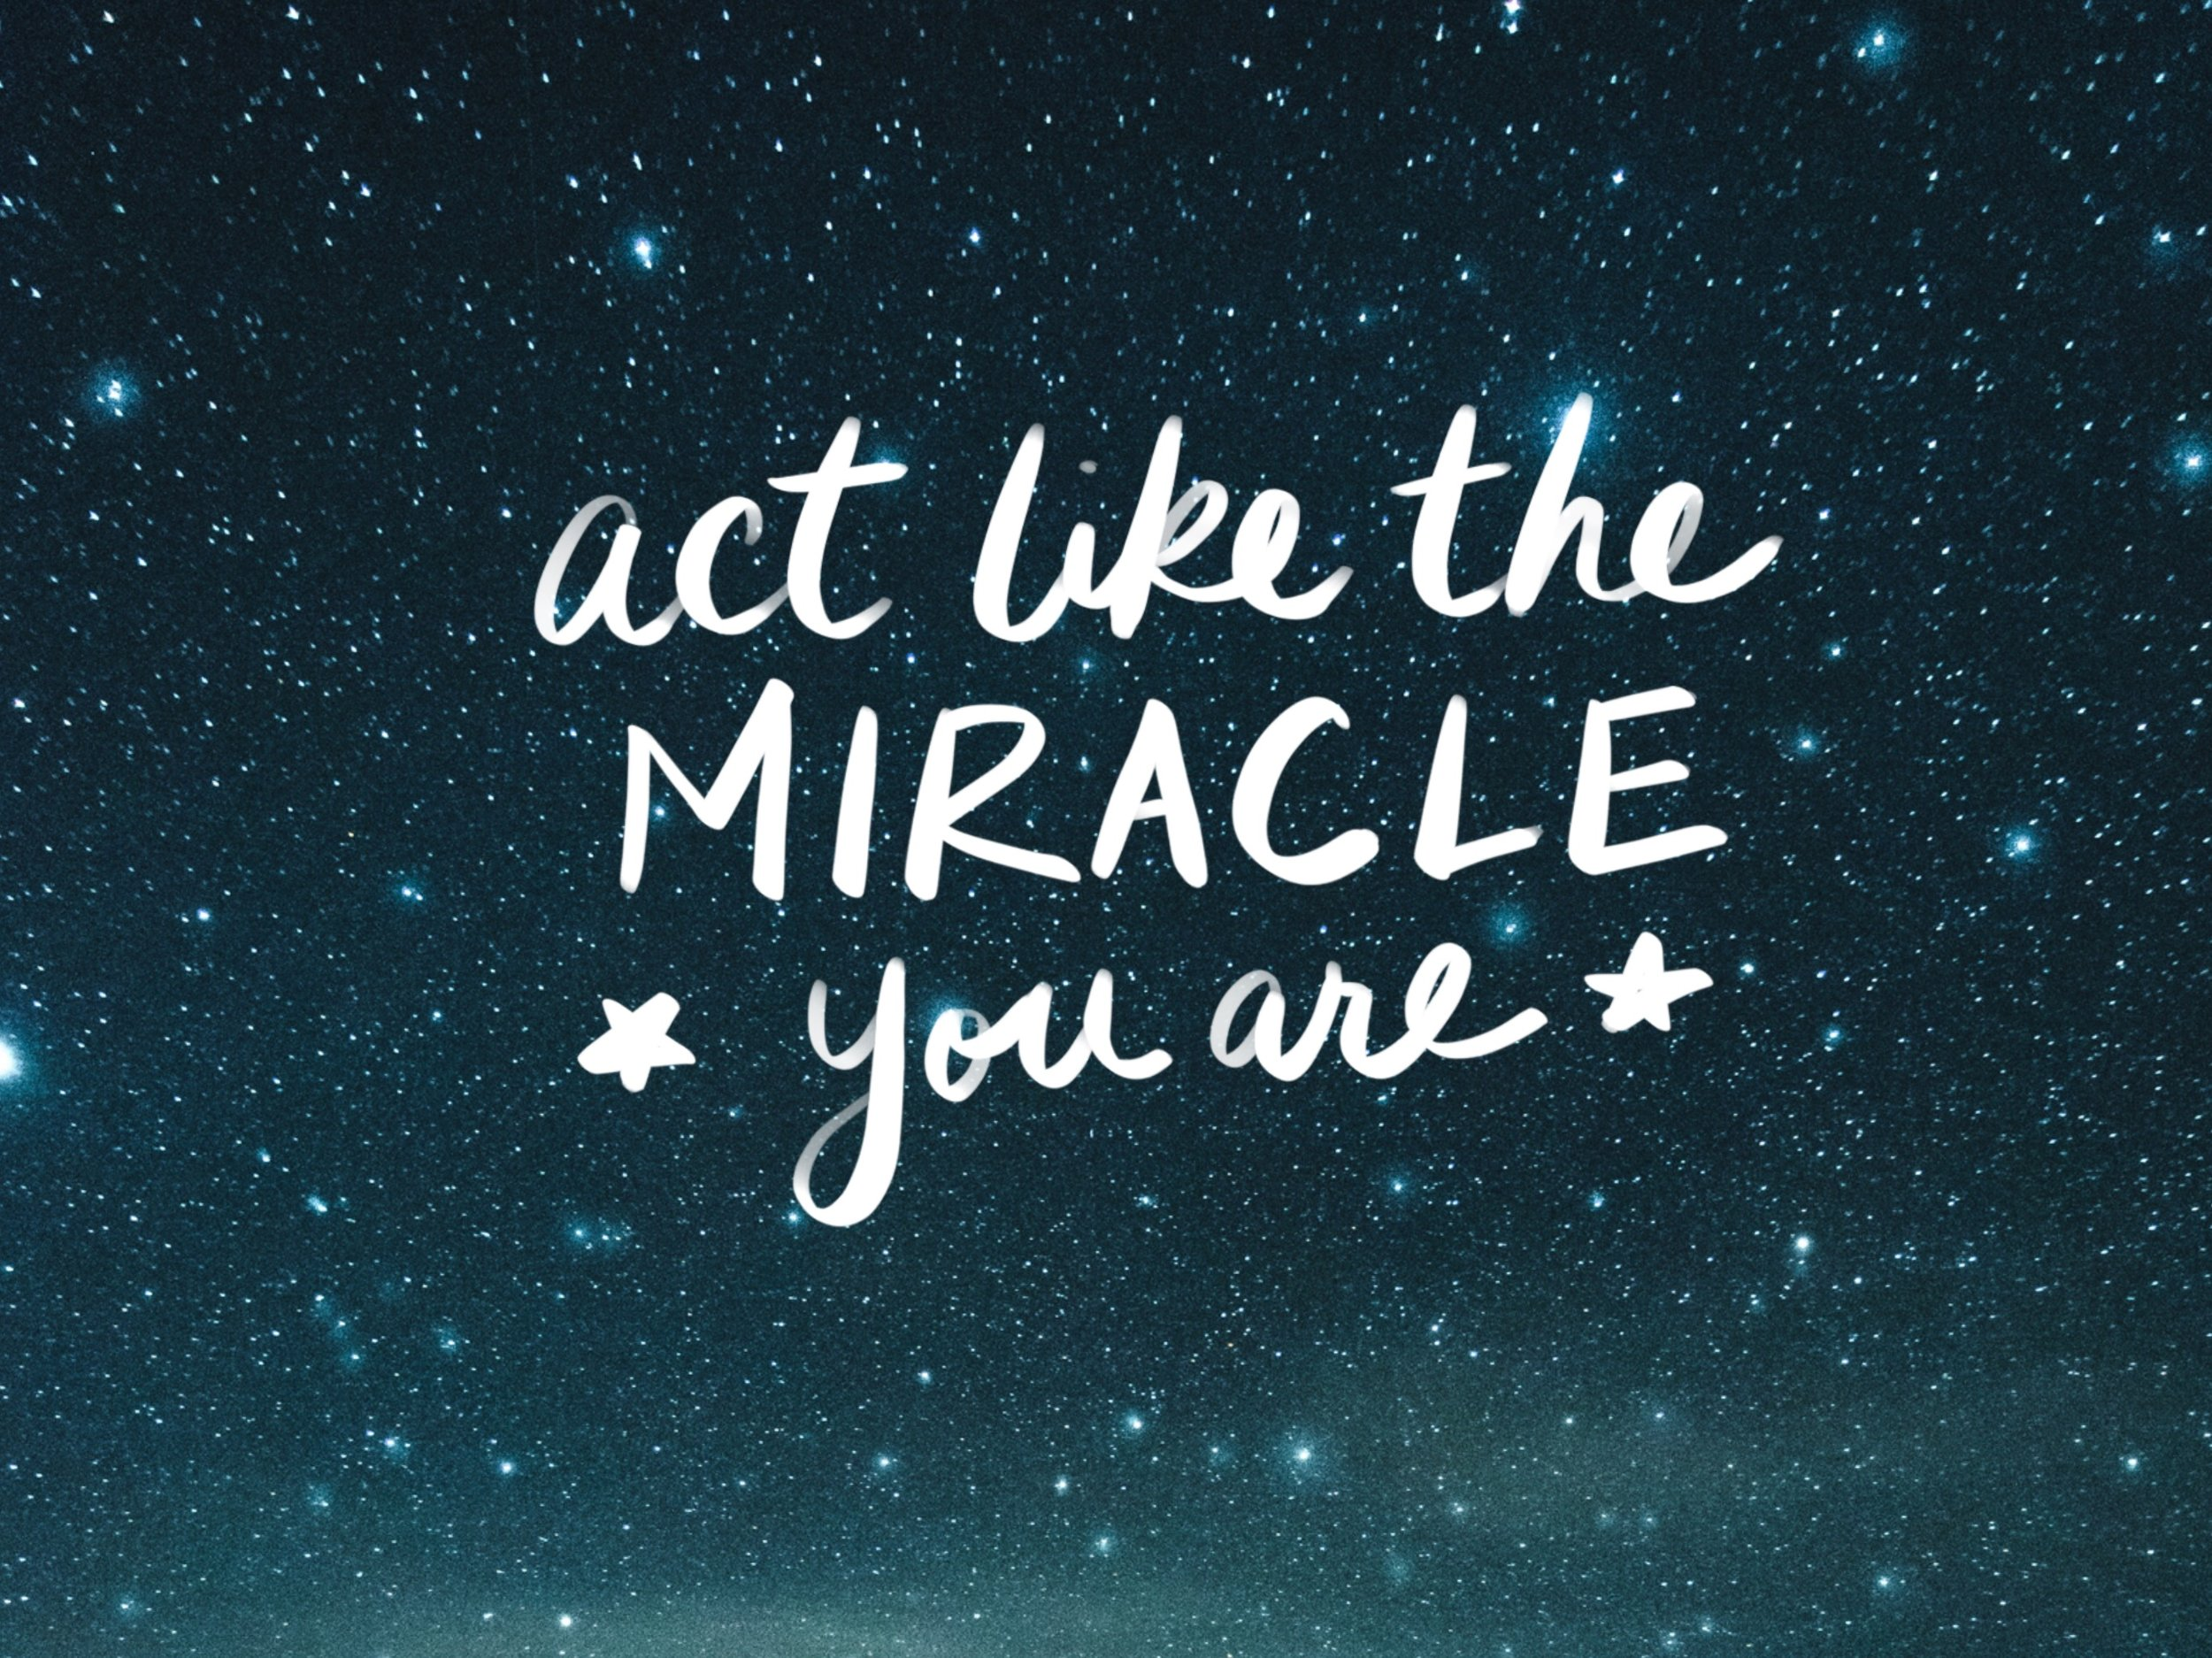 Act like the miracle you are.jpg